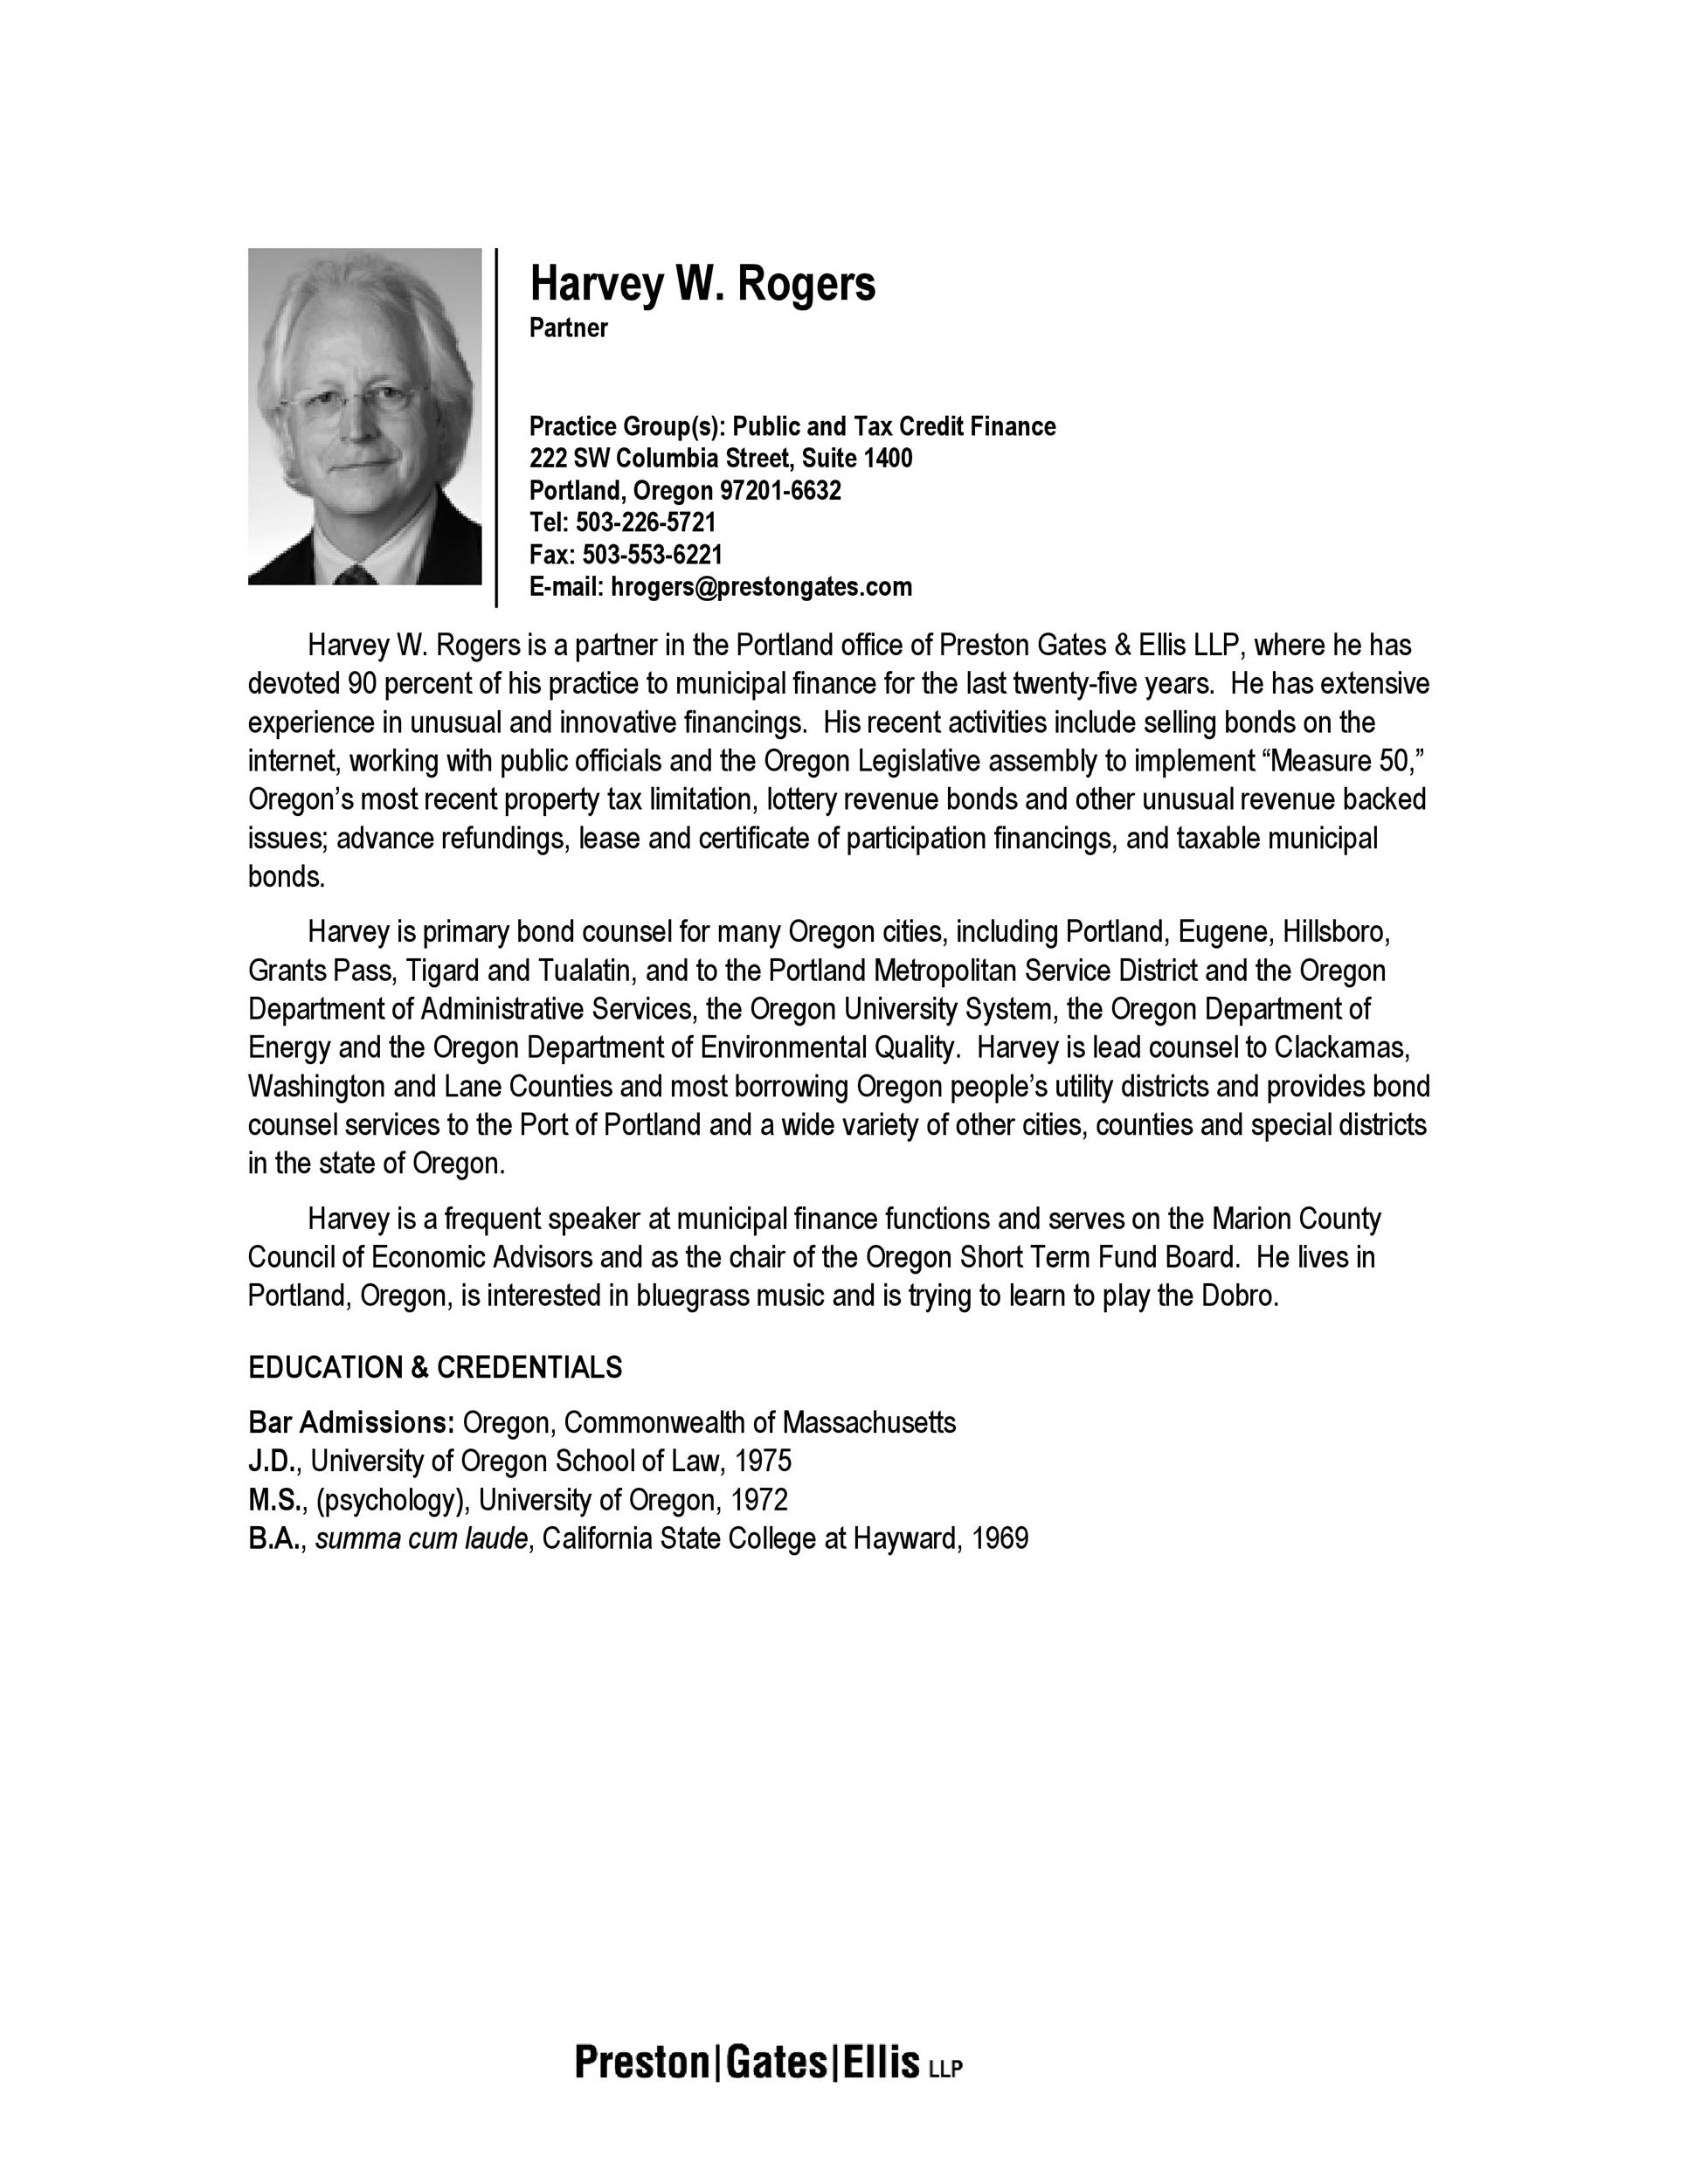 biography templates examples personal professional  printable biography sample 02